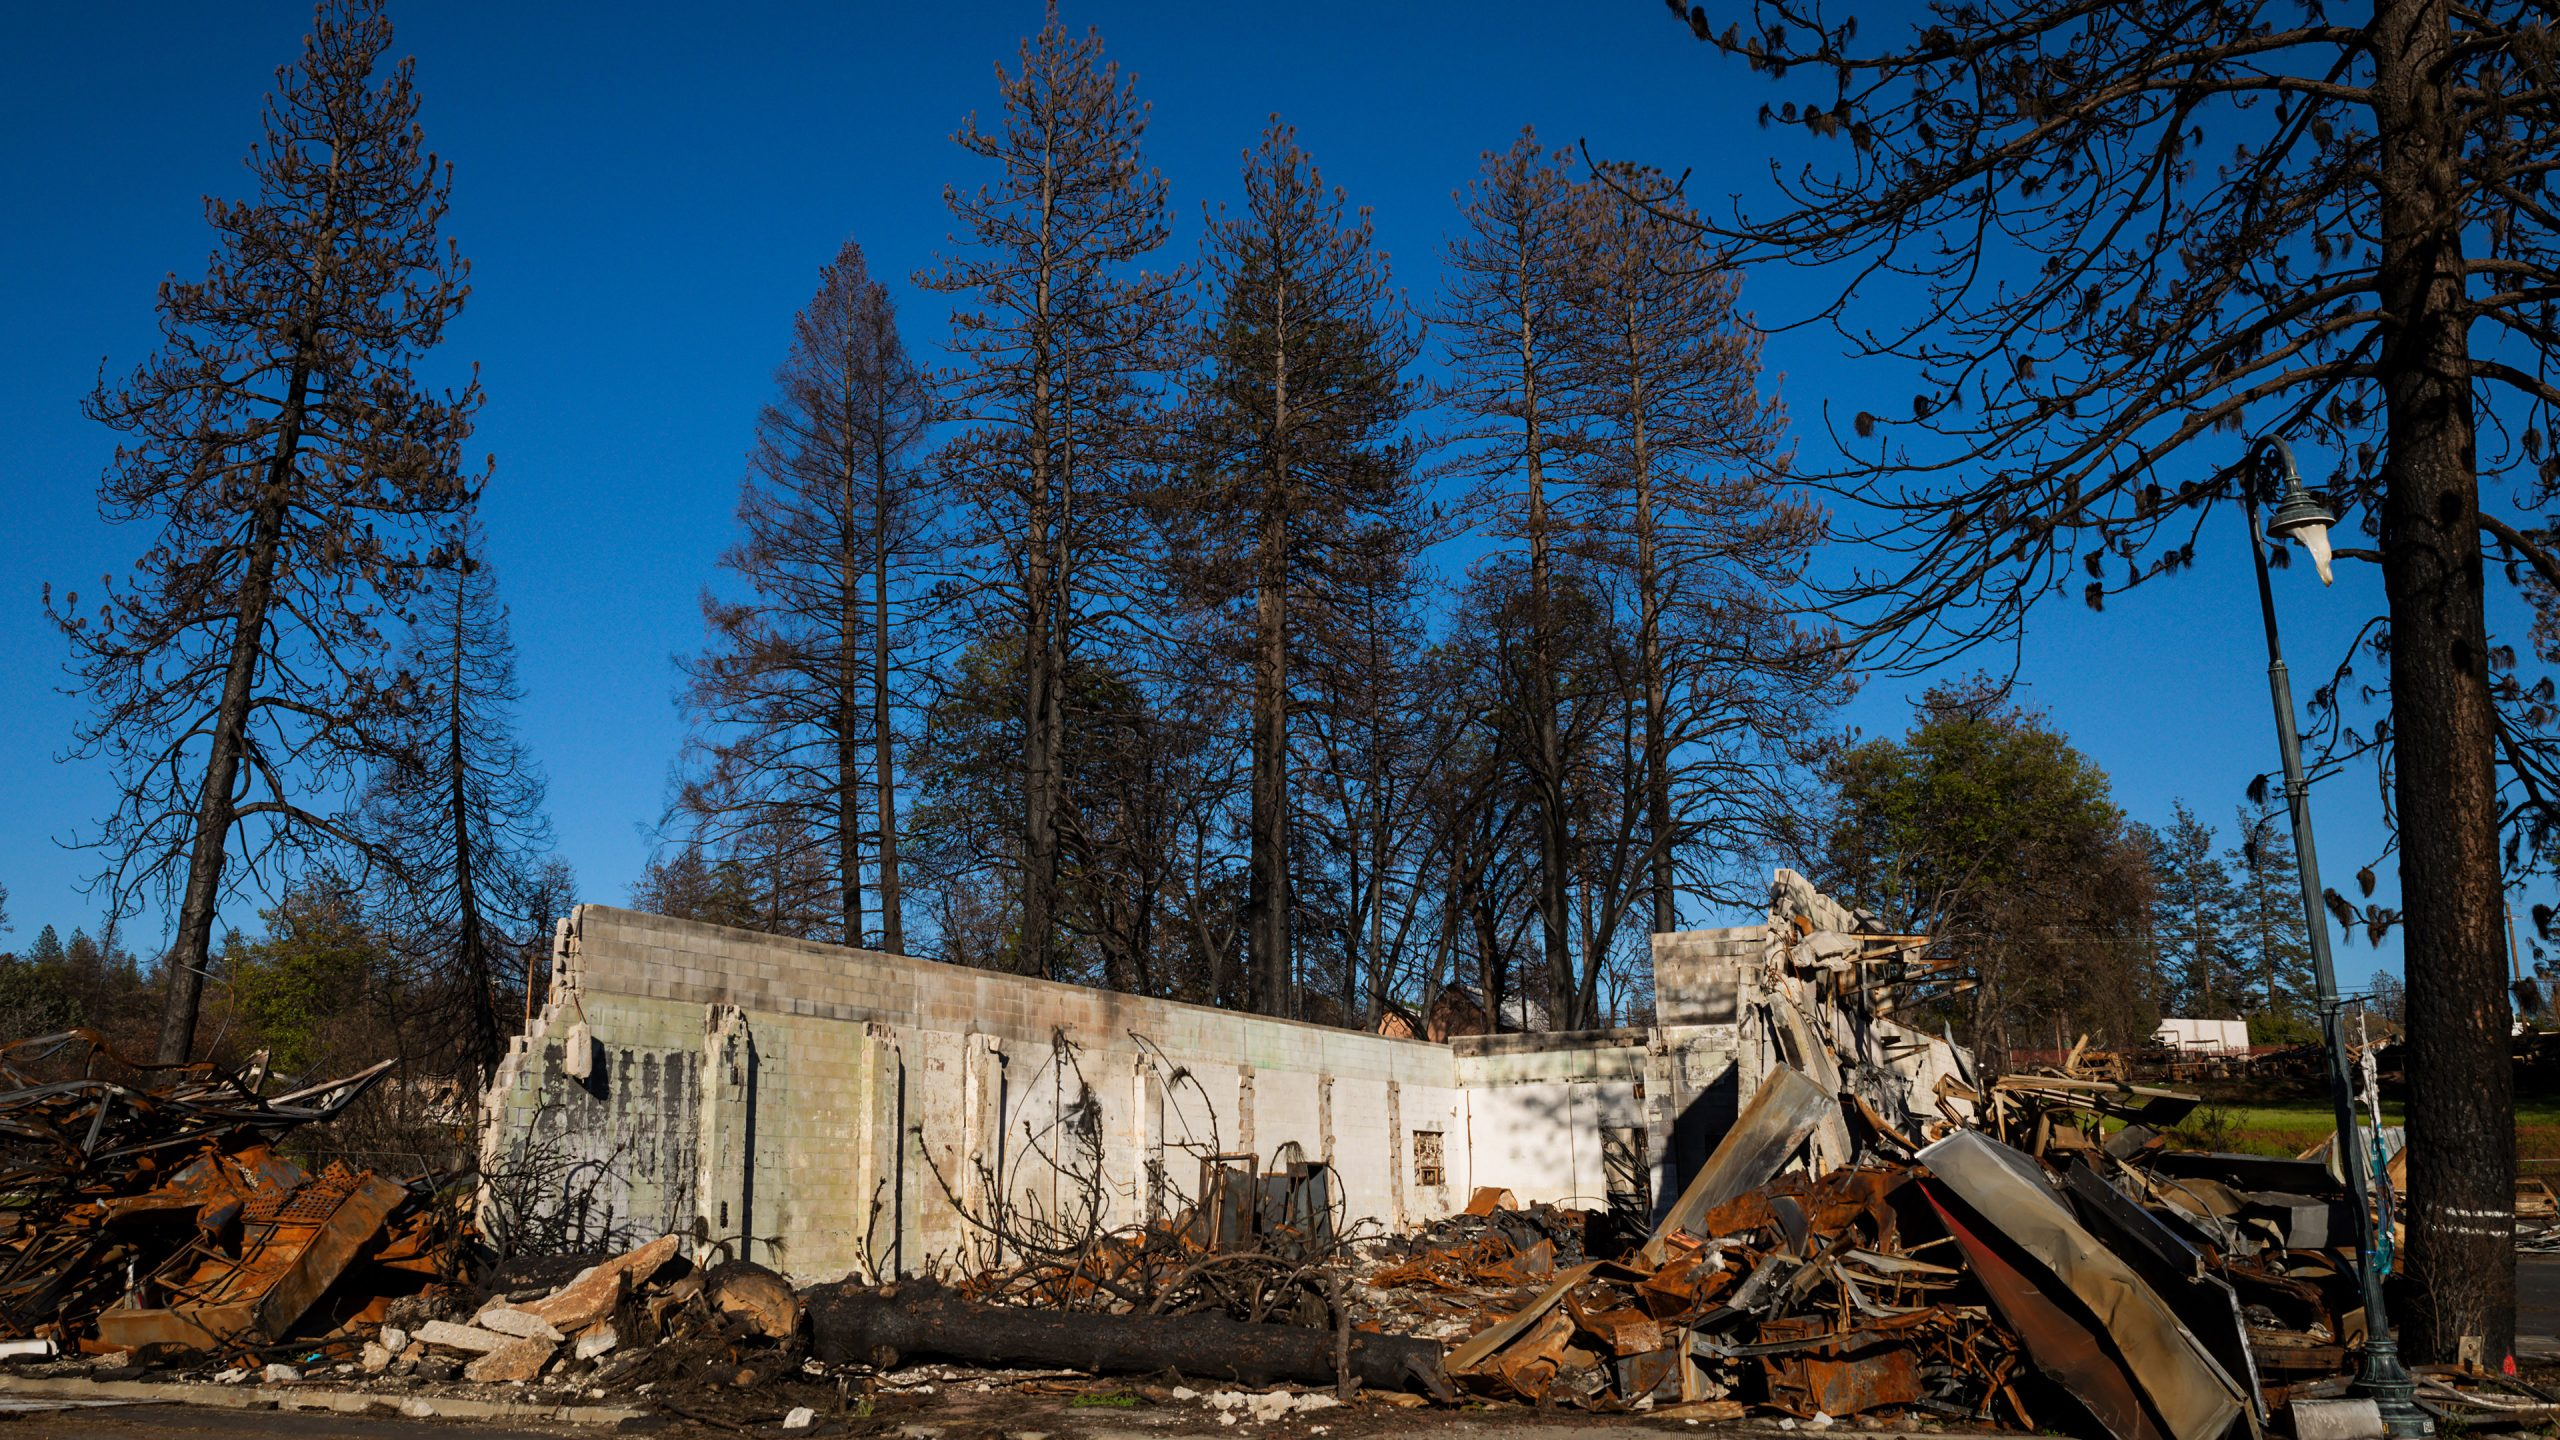 A destroyed structure in Paradise, CA. Photo by Joe Johnston.